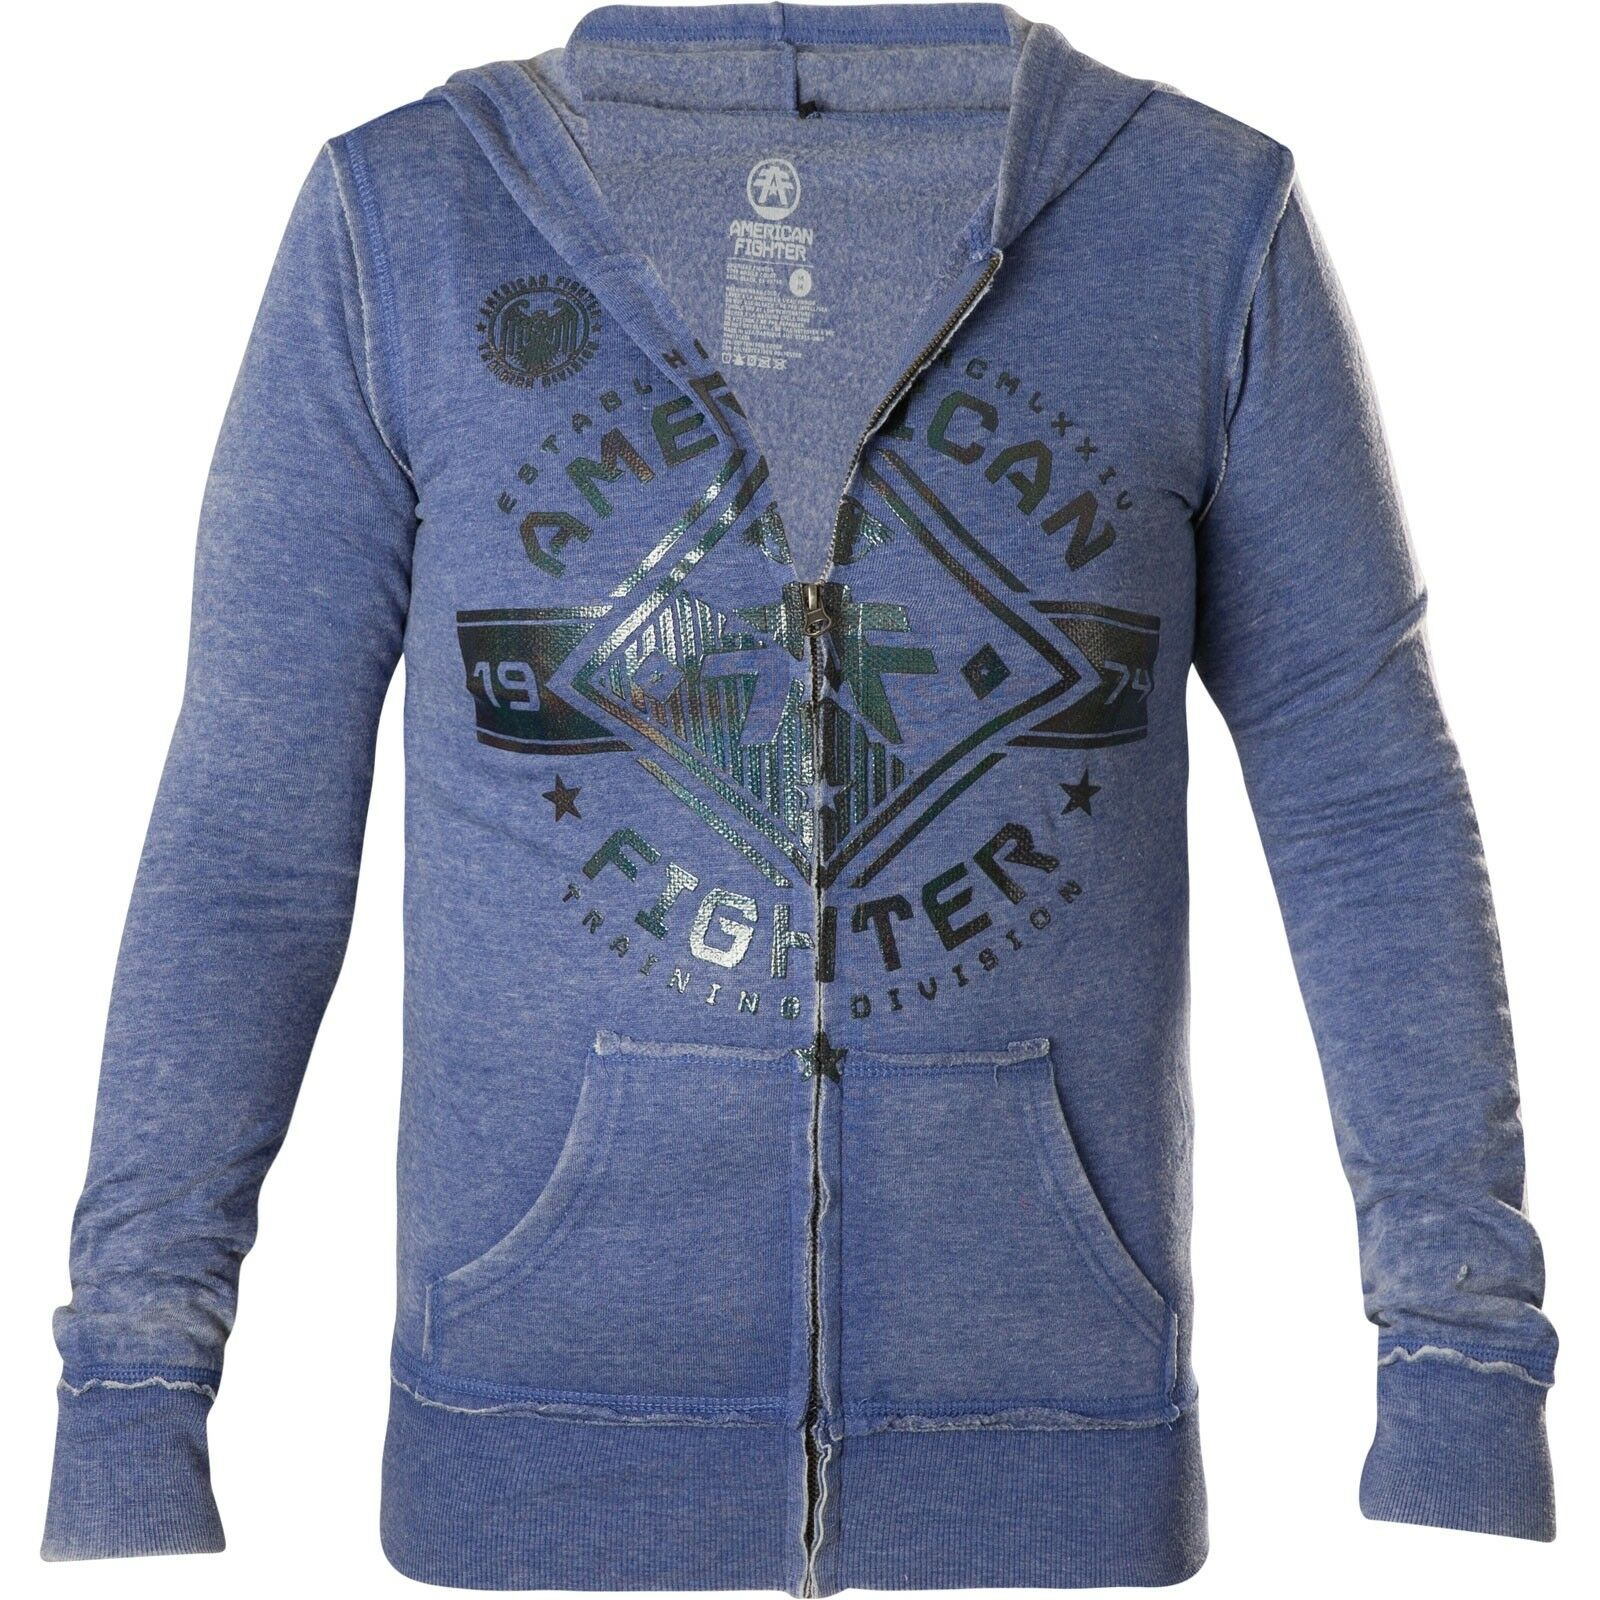 American Fighter Affliction Affliction Affliction Donna Hoody Massachusetts giacche blu con 76268e